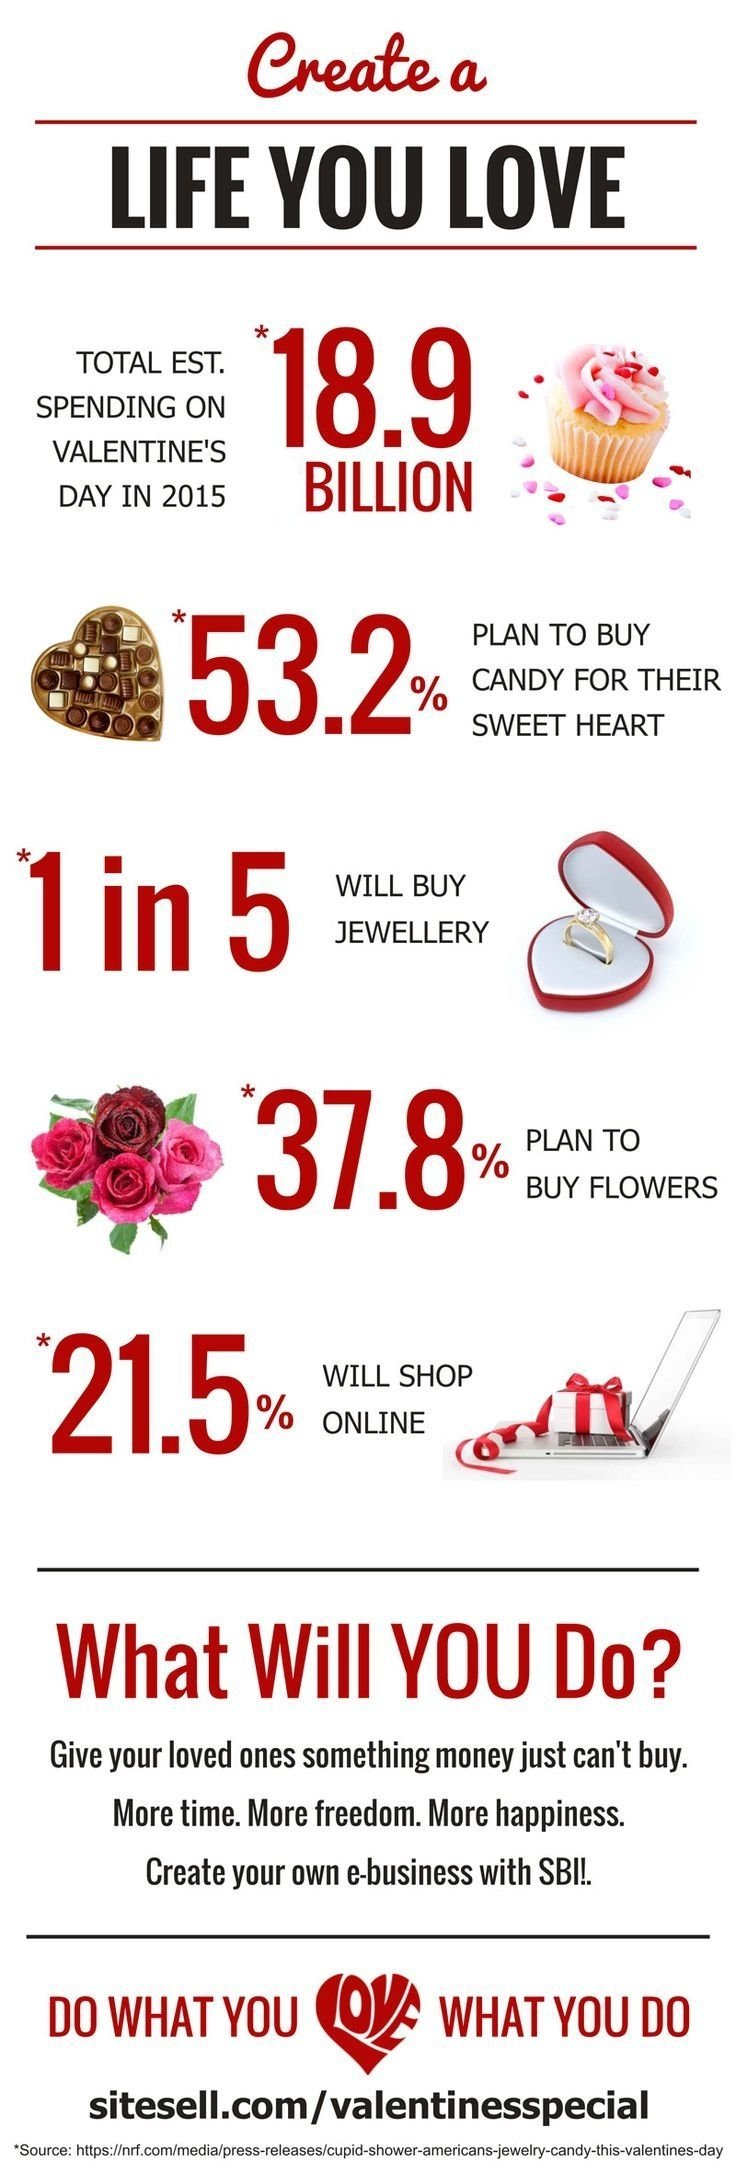 10 Gorgeous Good Ideas For A Business 23 best valentines day business ideas images on pinterest business 2021